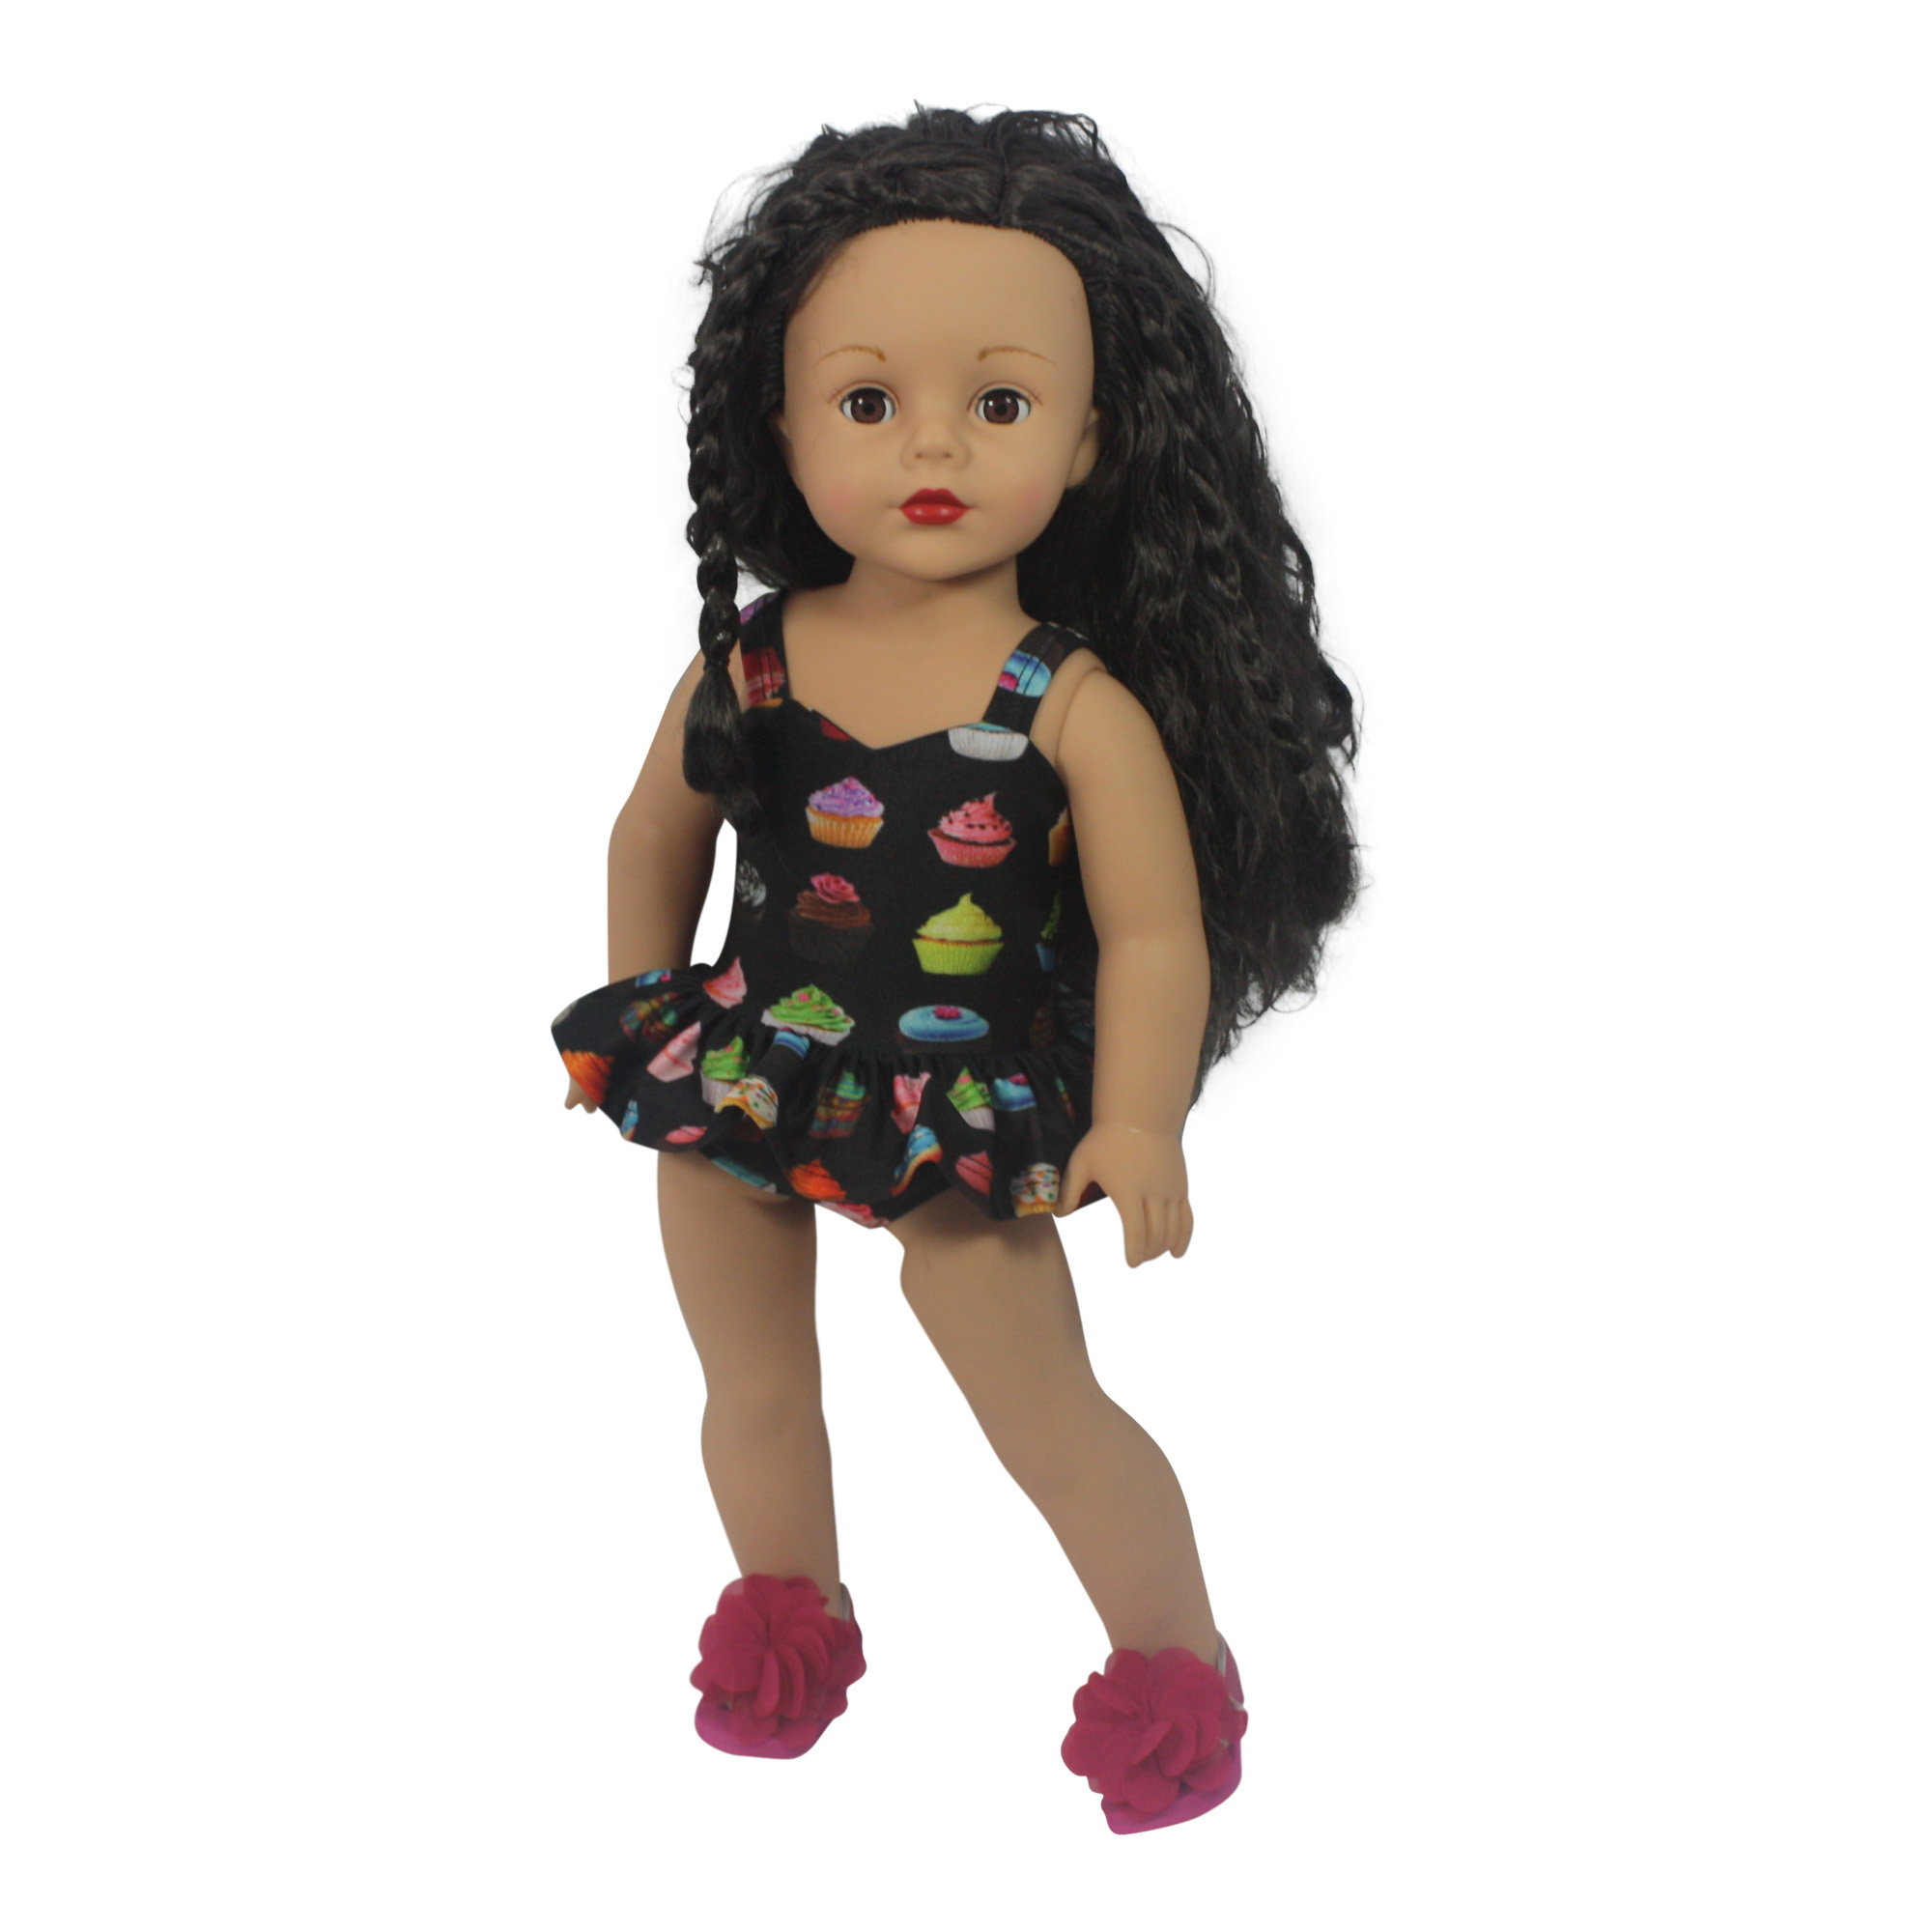 "Ari and Friends Yummy Cupcake Swimsuit Fits 18"" American Girl Dolls and other 18 inch... by Dream Big Wholesale Doll Clothes"